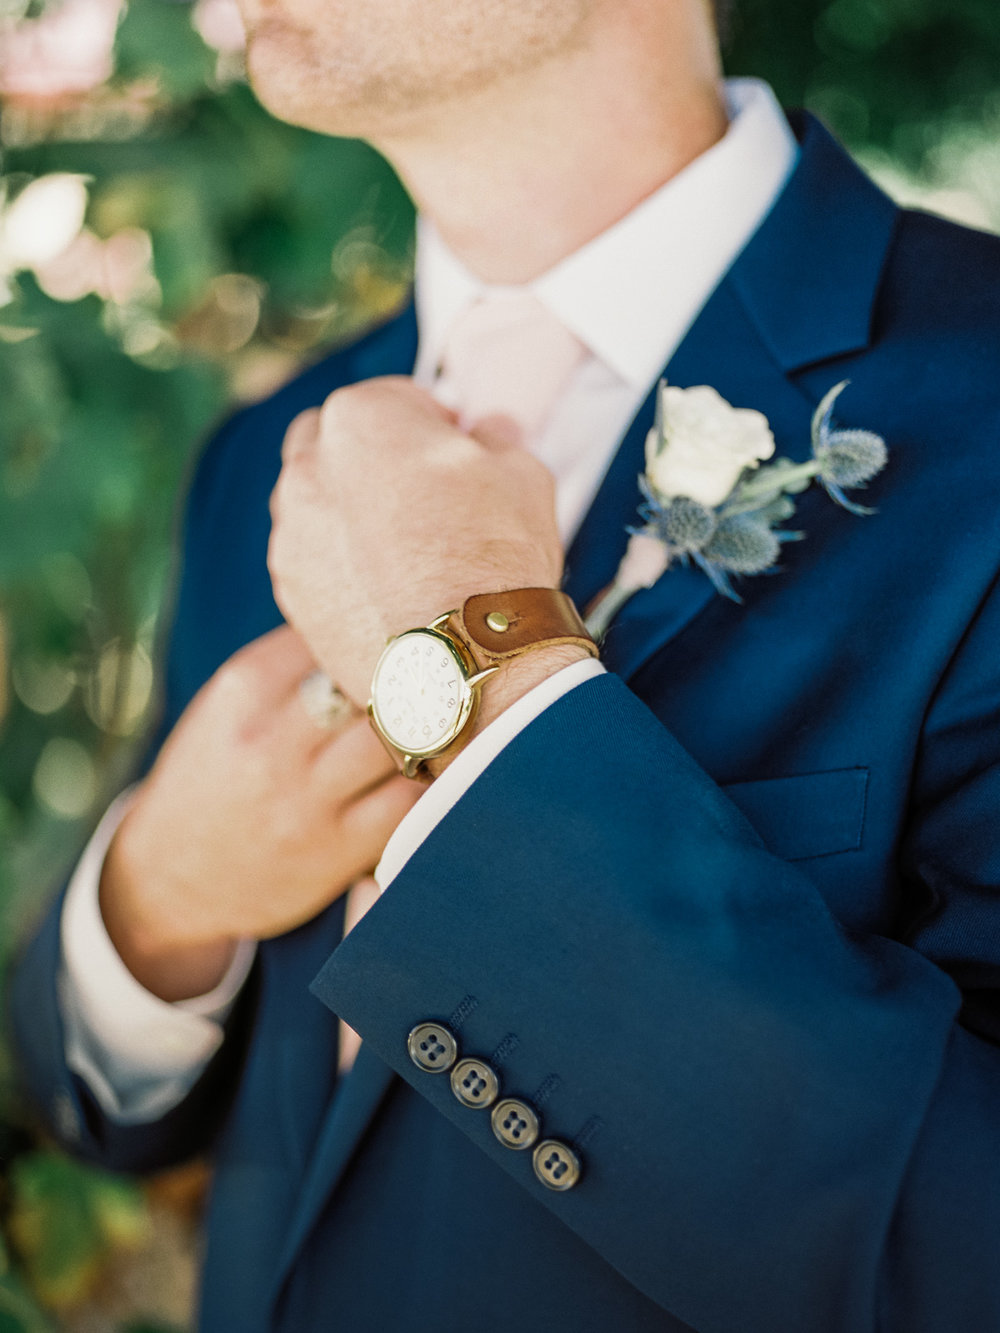 Groom straigtening tie | Harrison & Jocelyne's beautiful Temecula wedding captured by Temecula Wedding Photographers Betsy & John | Temecula film photographers portra 800